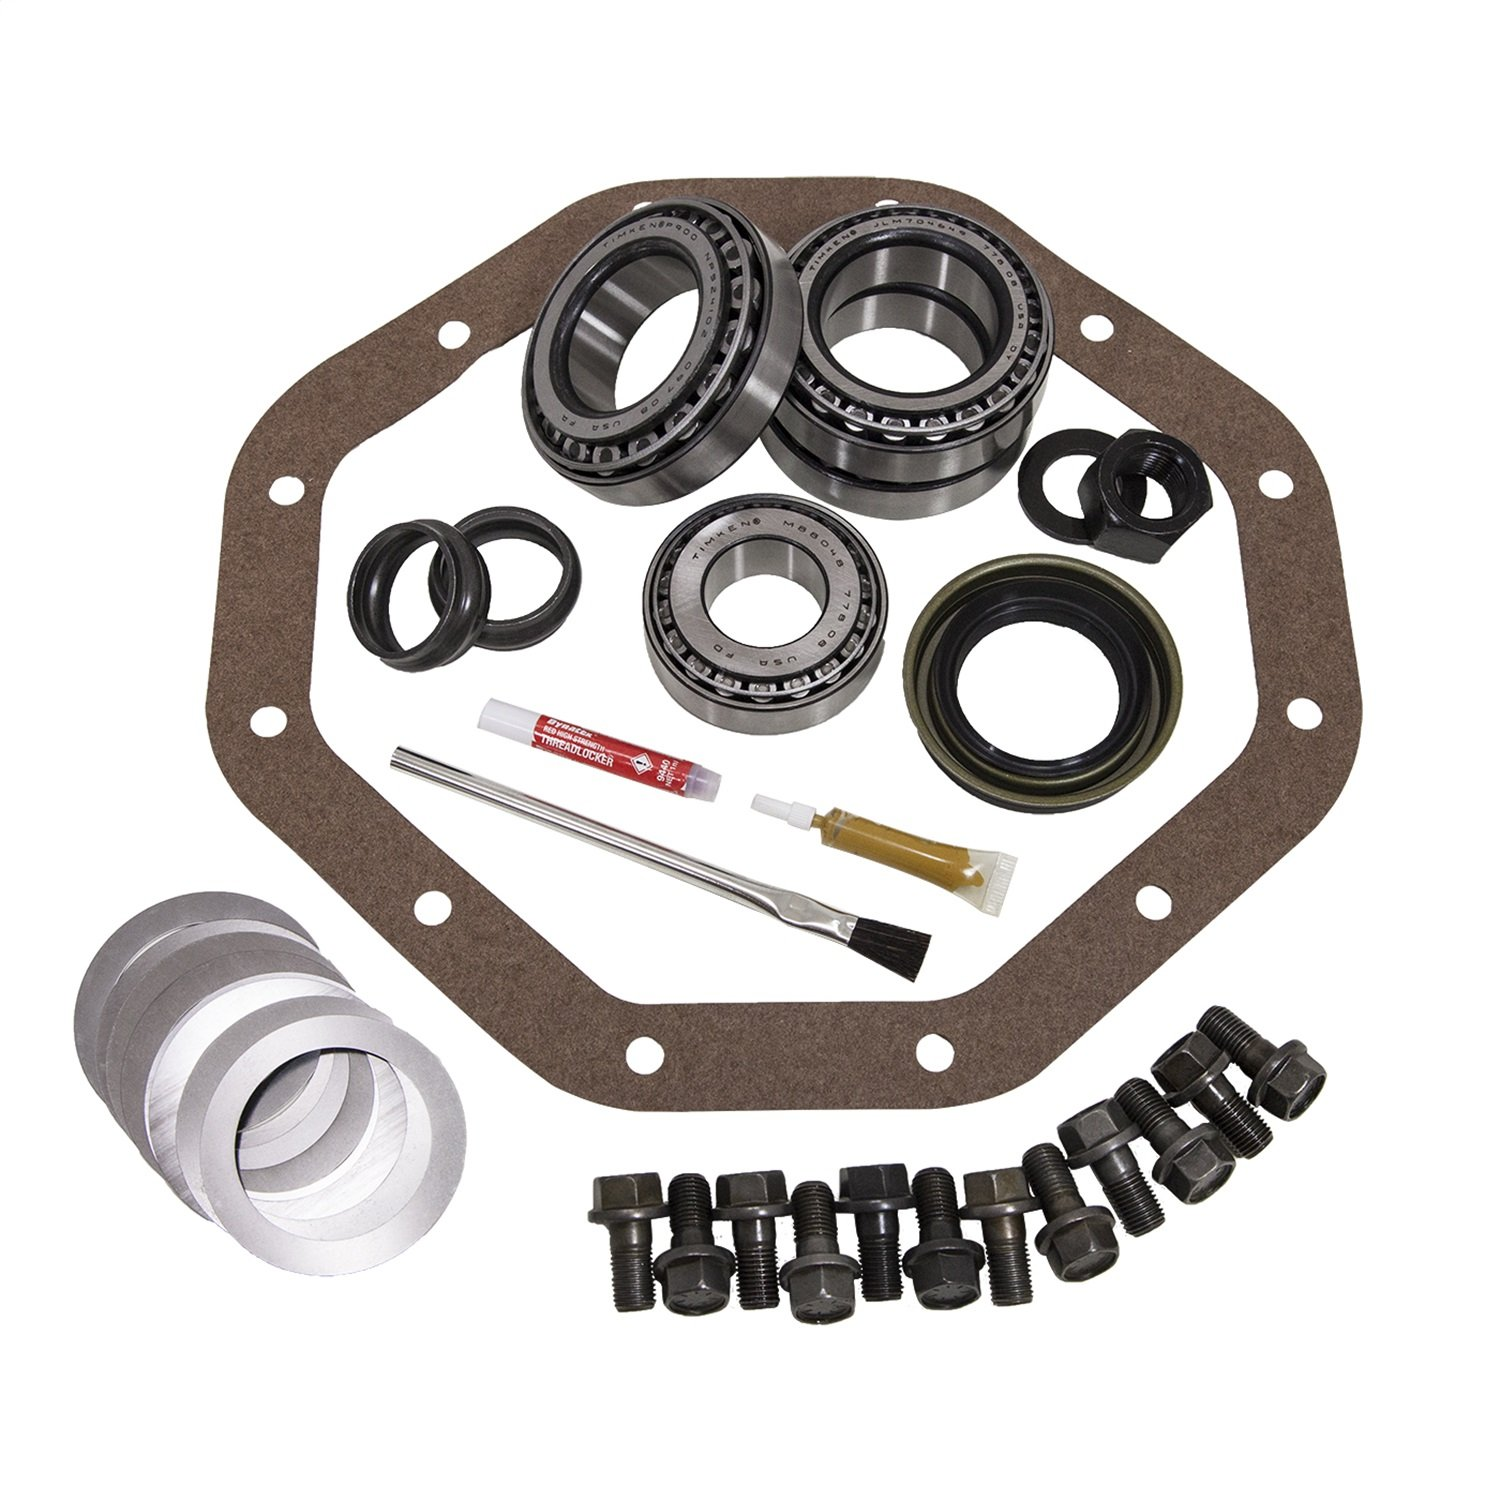 USA Standard Gear (ZK C9.25-R-B) Master Overhaul Kit for Chrysler 9.25'' Rear Differential by USA Standard Gear